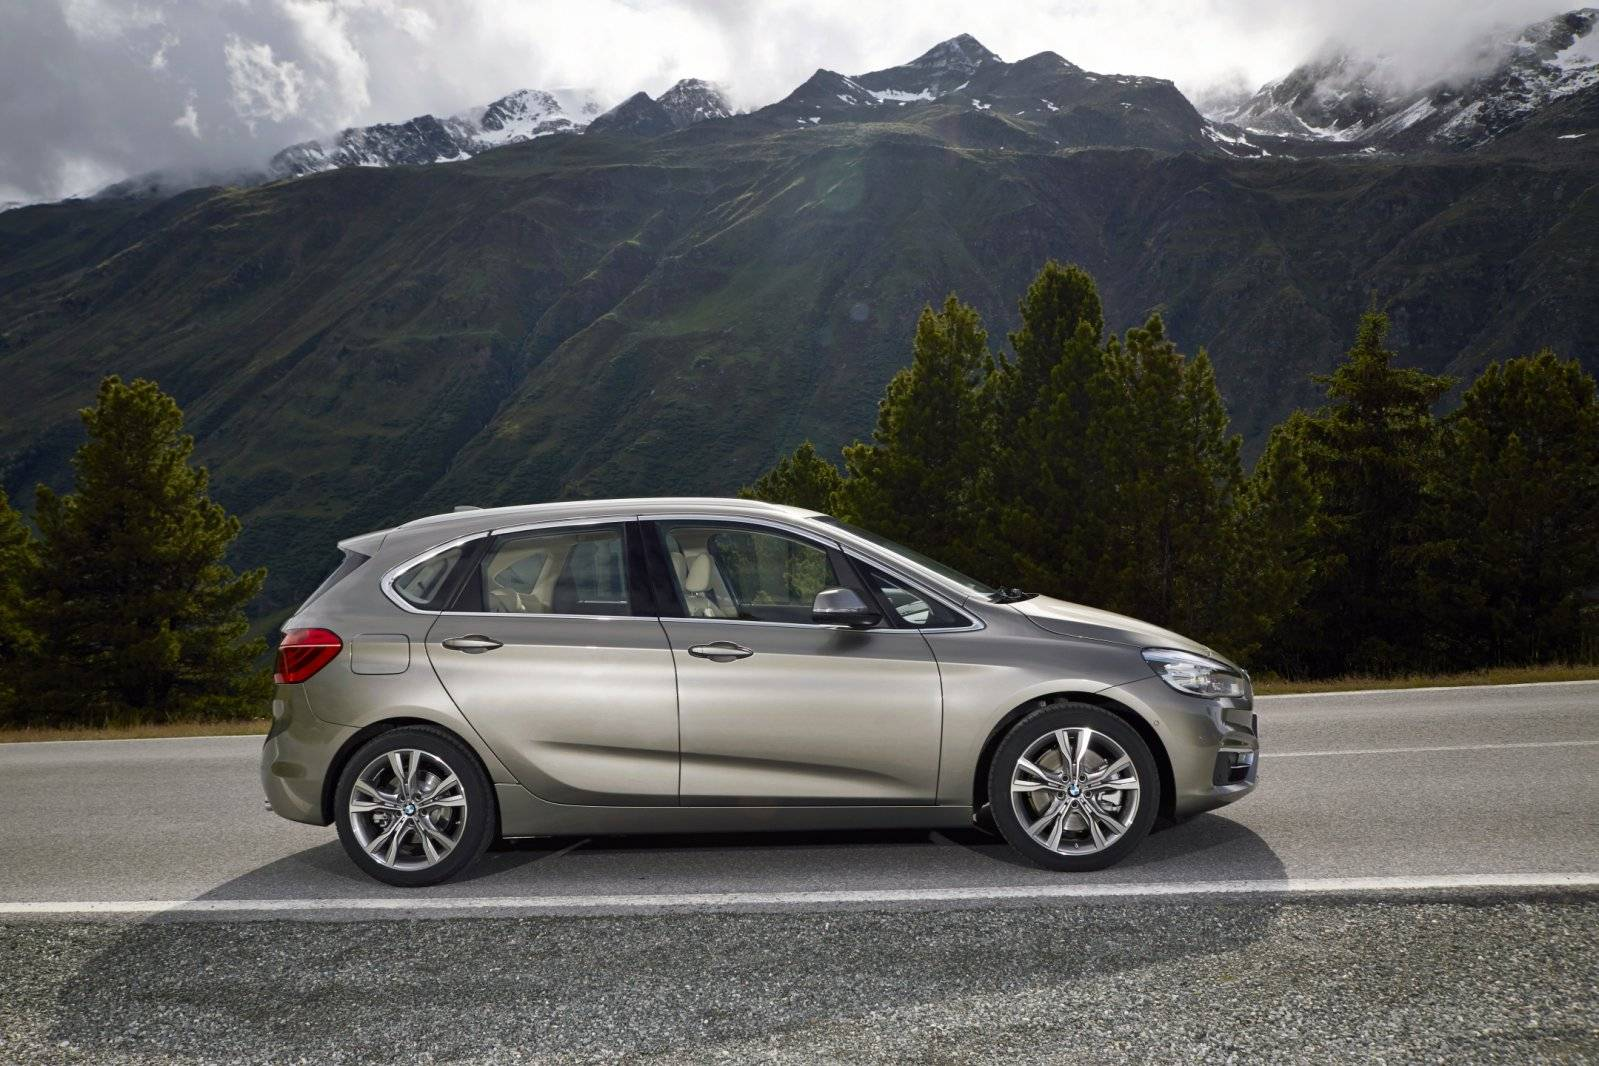 nieuwe motoren en xdrive voor bmw 2 serie active tourer. Black Bedroom Furniture Sets. Home Design Ideas